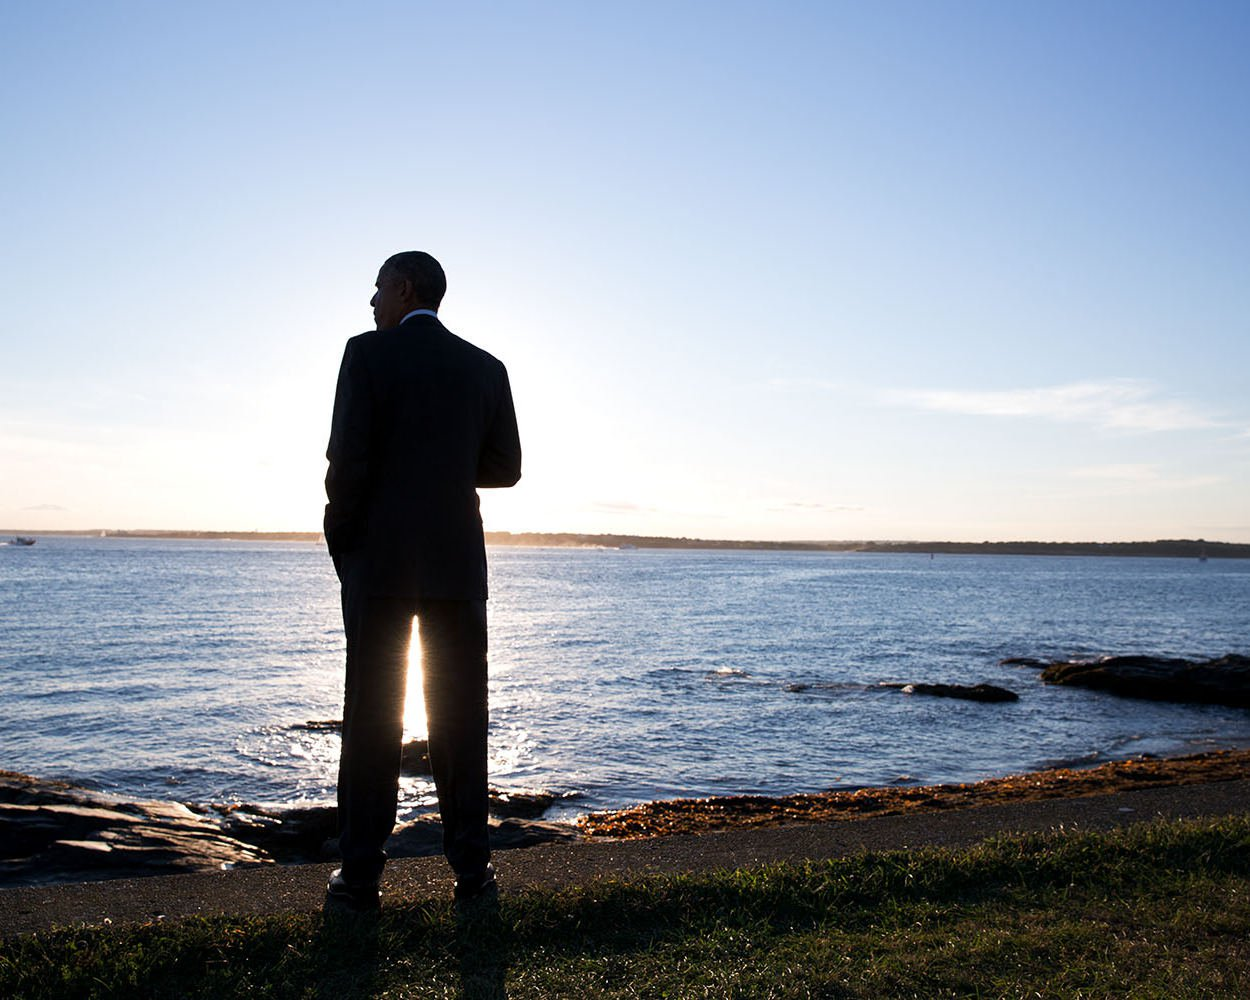 BARACK OBAMA AT BRENTON POINT IN NEWPORT, RHODE ISLAND - 8X10 PHOTO (ZY-383)